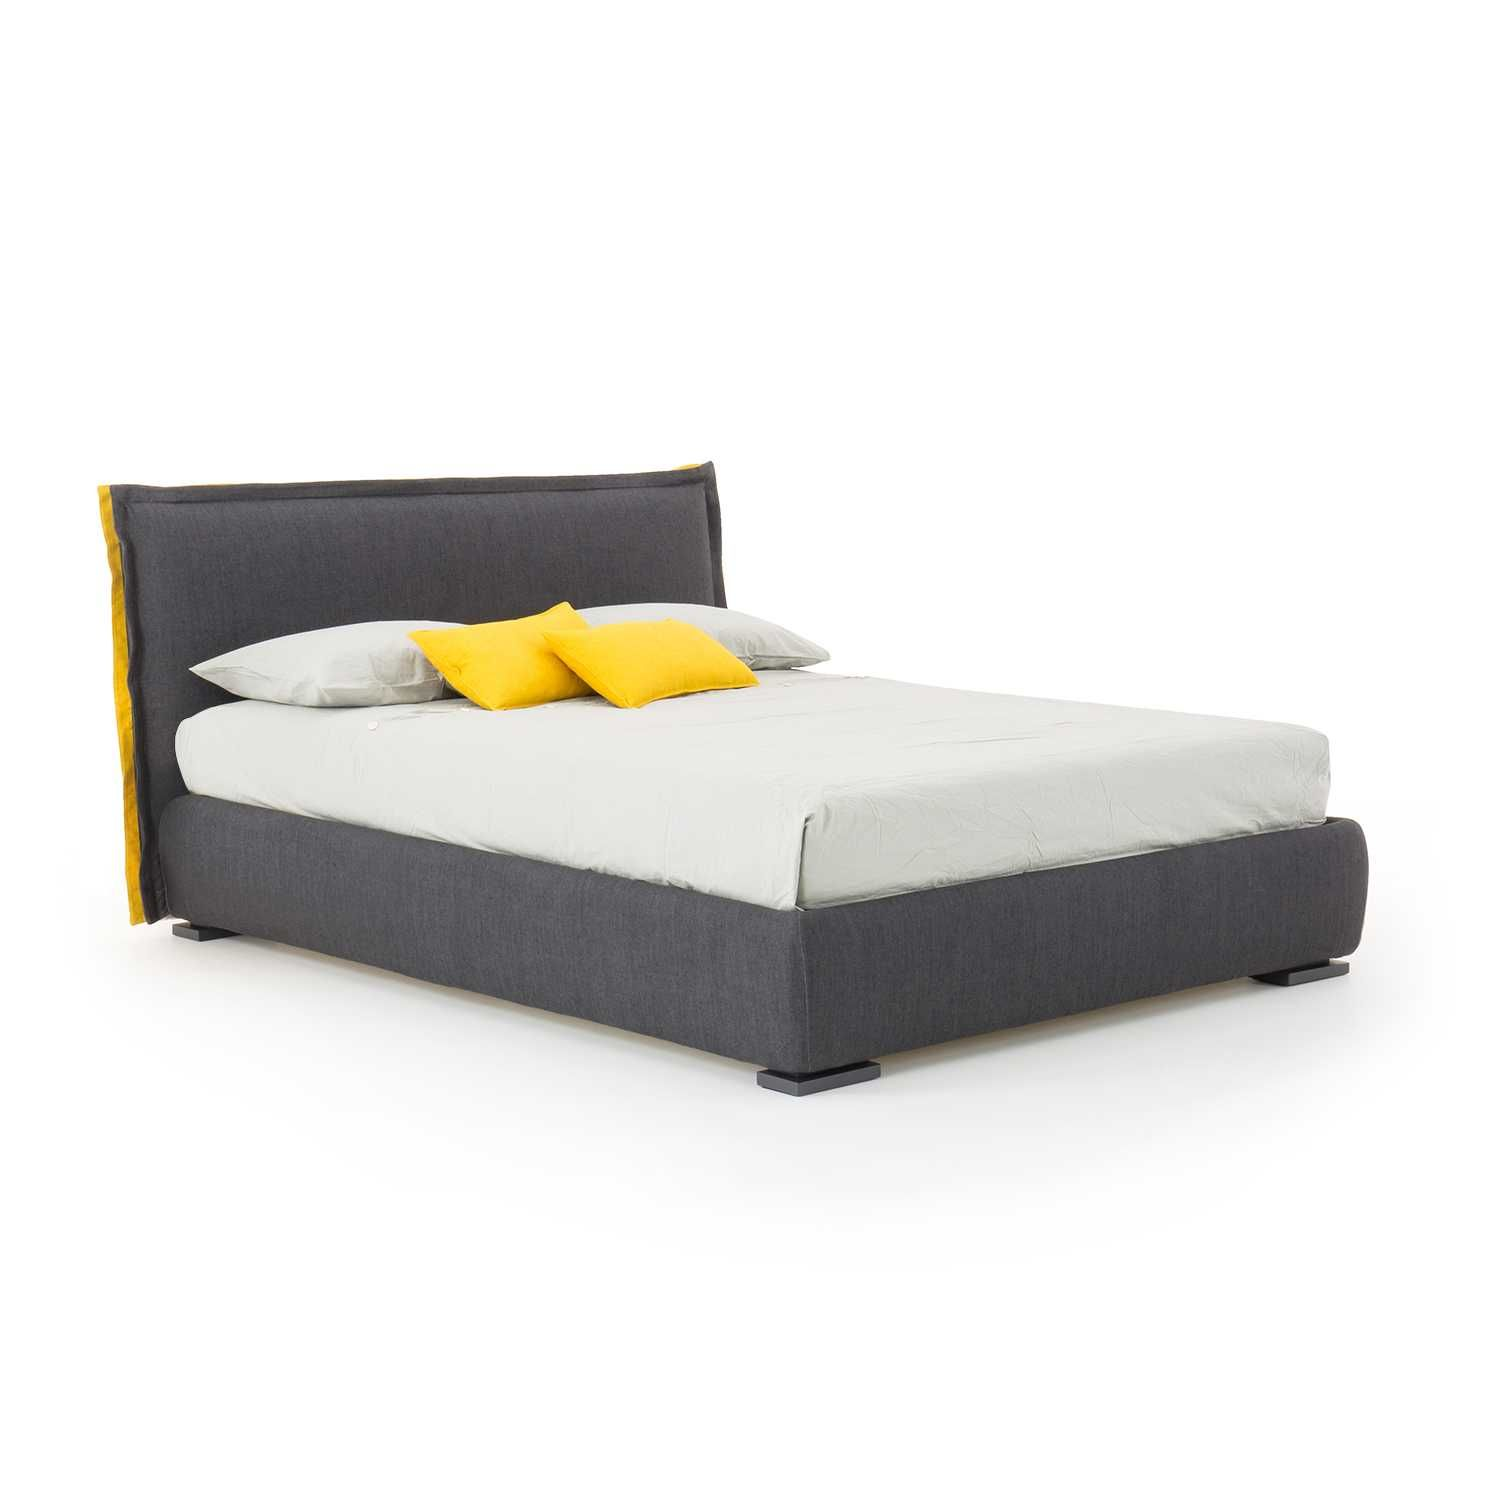 Charme Two Tone Bed With High Headboard Diotti Com High Headboard Beds Headboard Bed